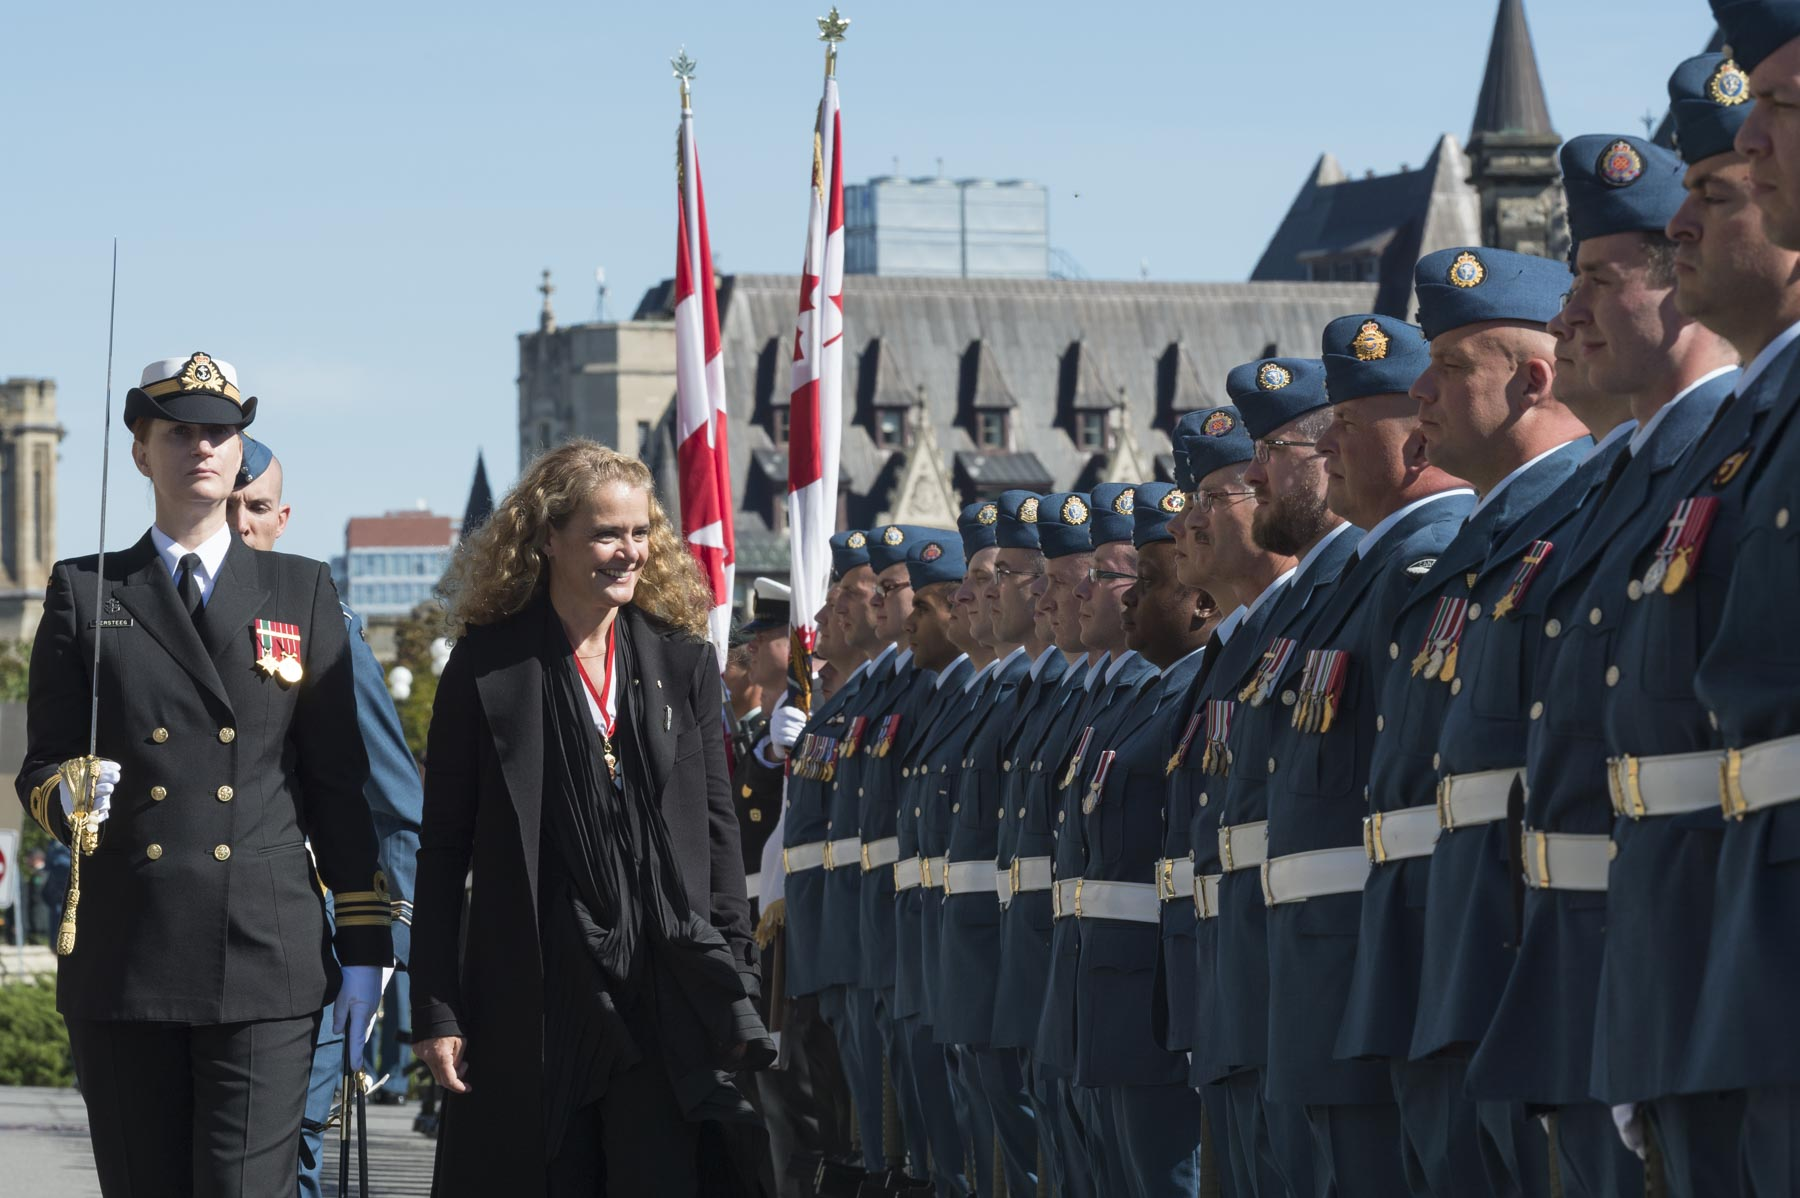 She then inspected the guard of honour for the first time as commander-in-Chief of Canada.